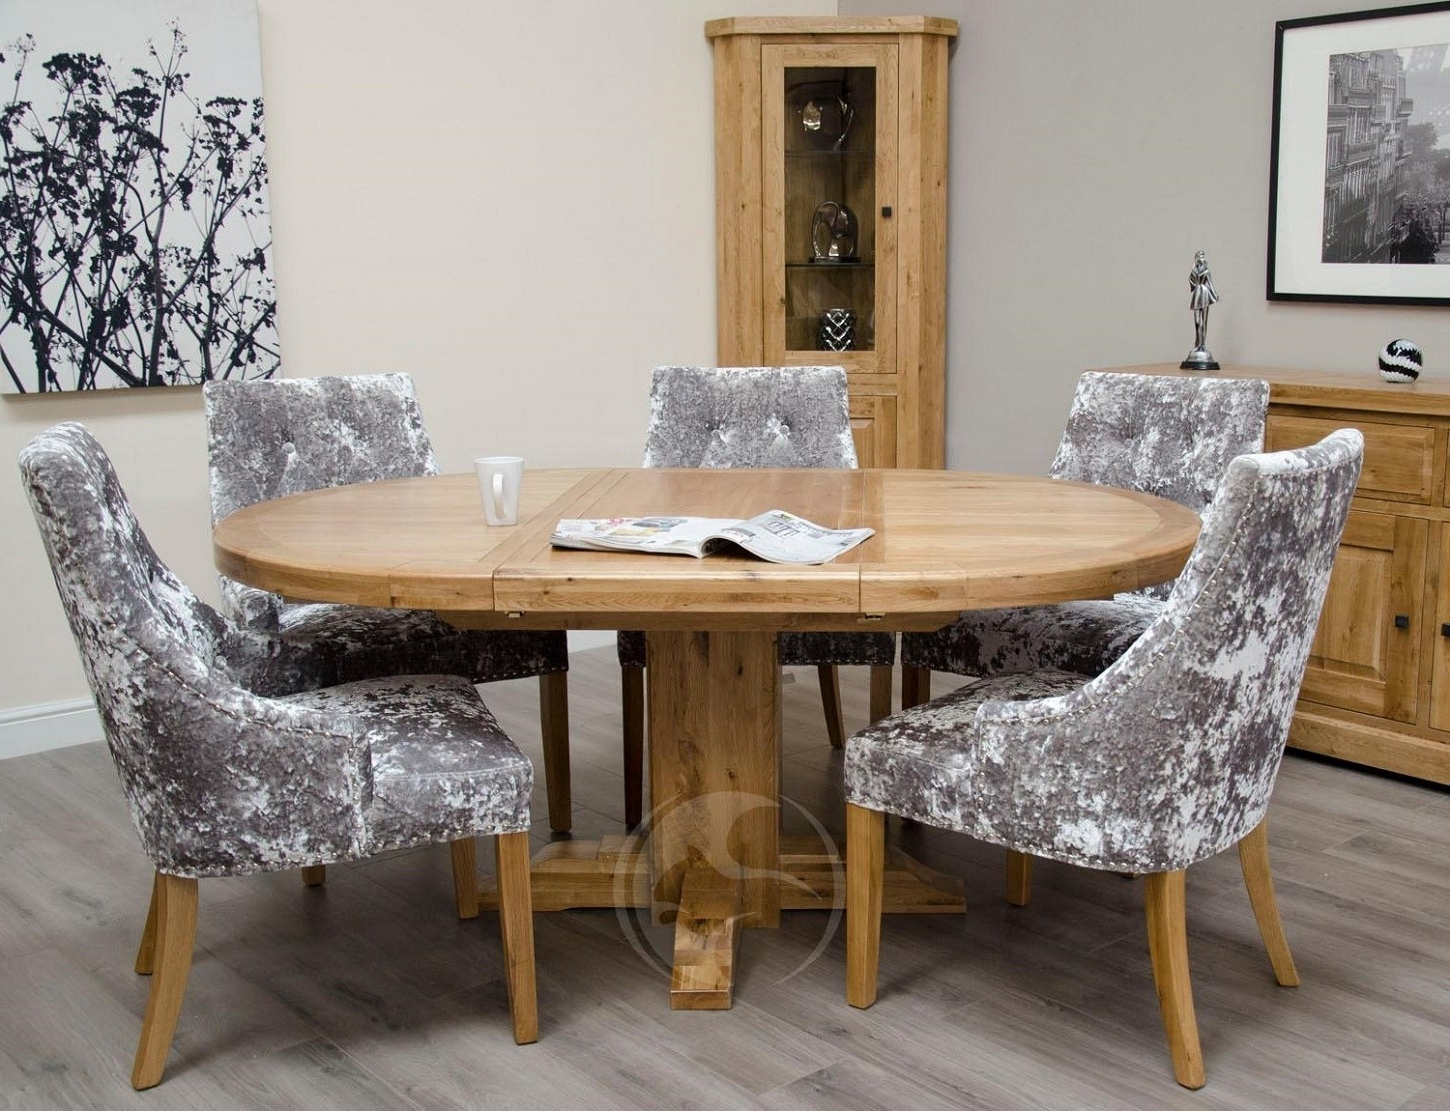 Round Extending Dining Tables And Chairs With Best And Newest Coniston Rustic Solid Oak Round Extending Dining Table (View 9 of 25)